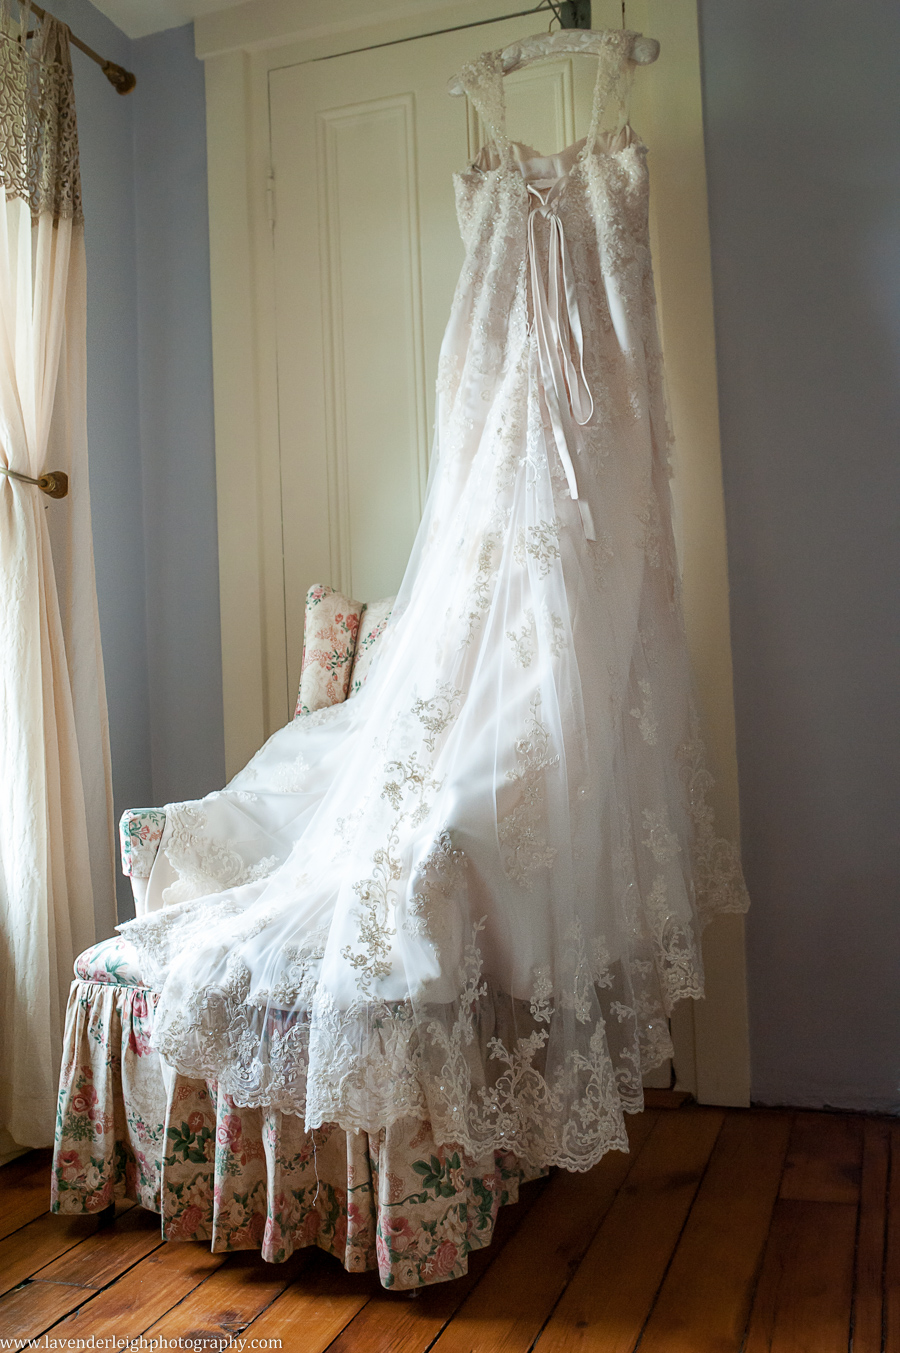 Lace Wedding Dress | Maggie Sottero | Ivory | Lingrow Farms | Barn Wedding | Farmhouse Getting Ready Pictures |  Pittsburgh Wedding Photographer | Pittsburgh Wedding Photographers | Lavender Leigh Photography | Blog